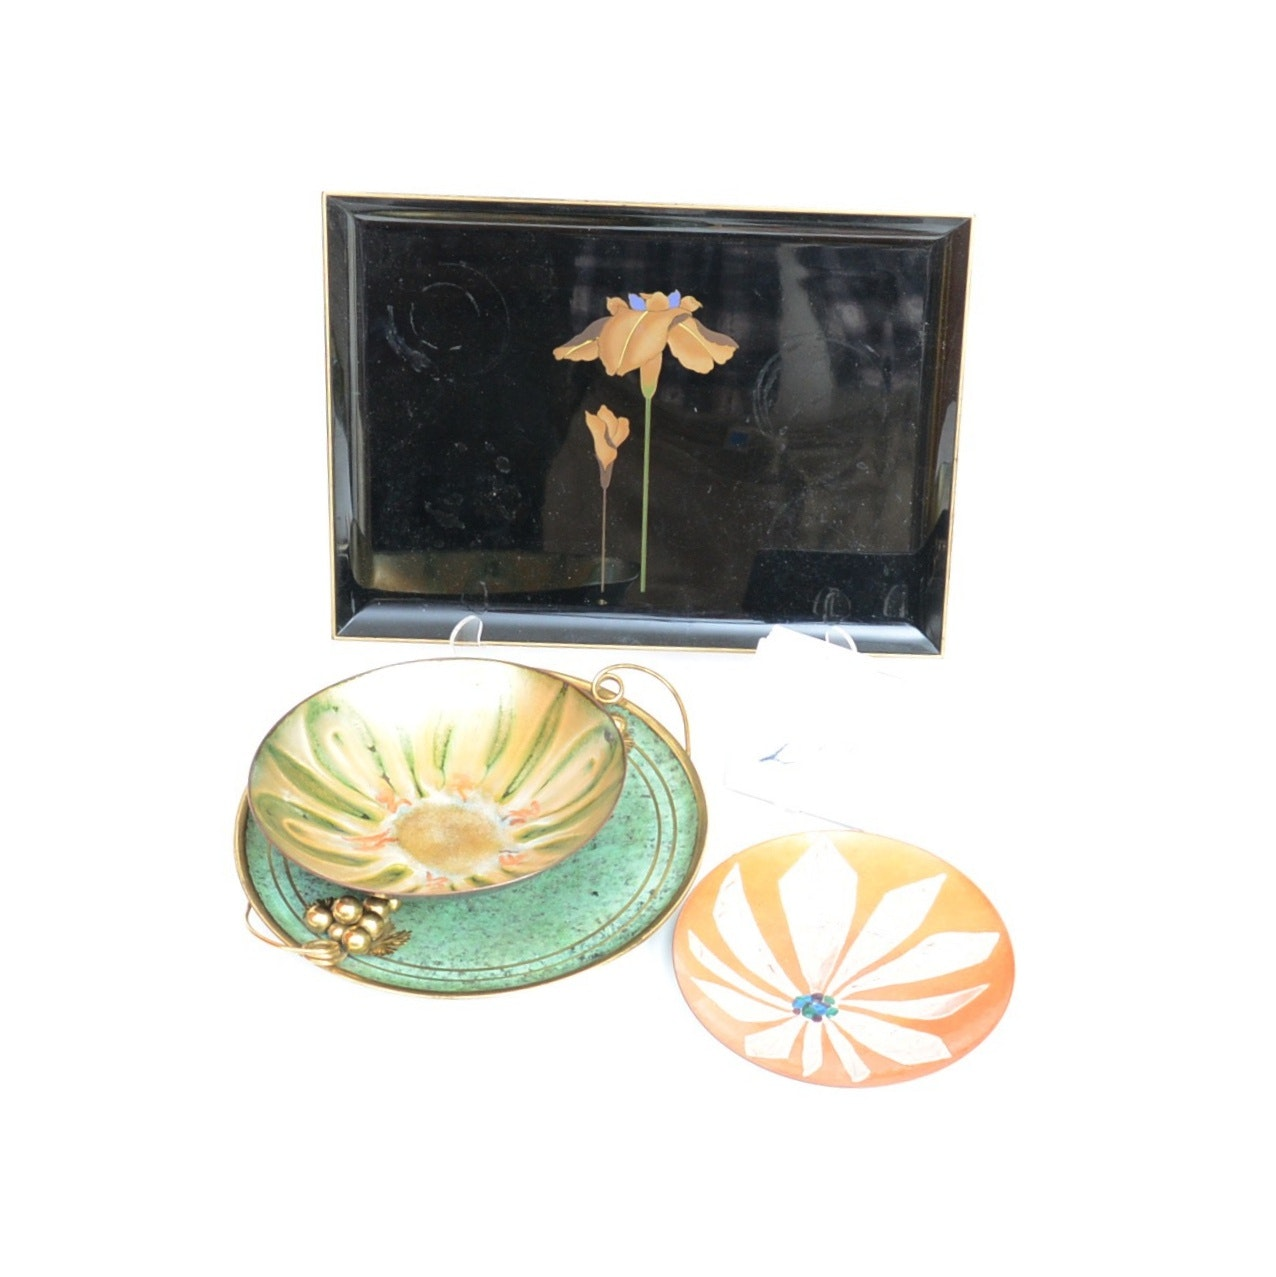 Vintage Enameled Dishes and Serving Tray